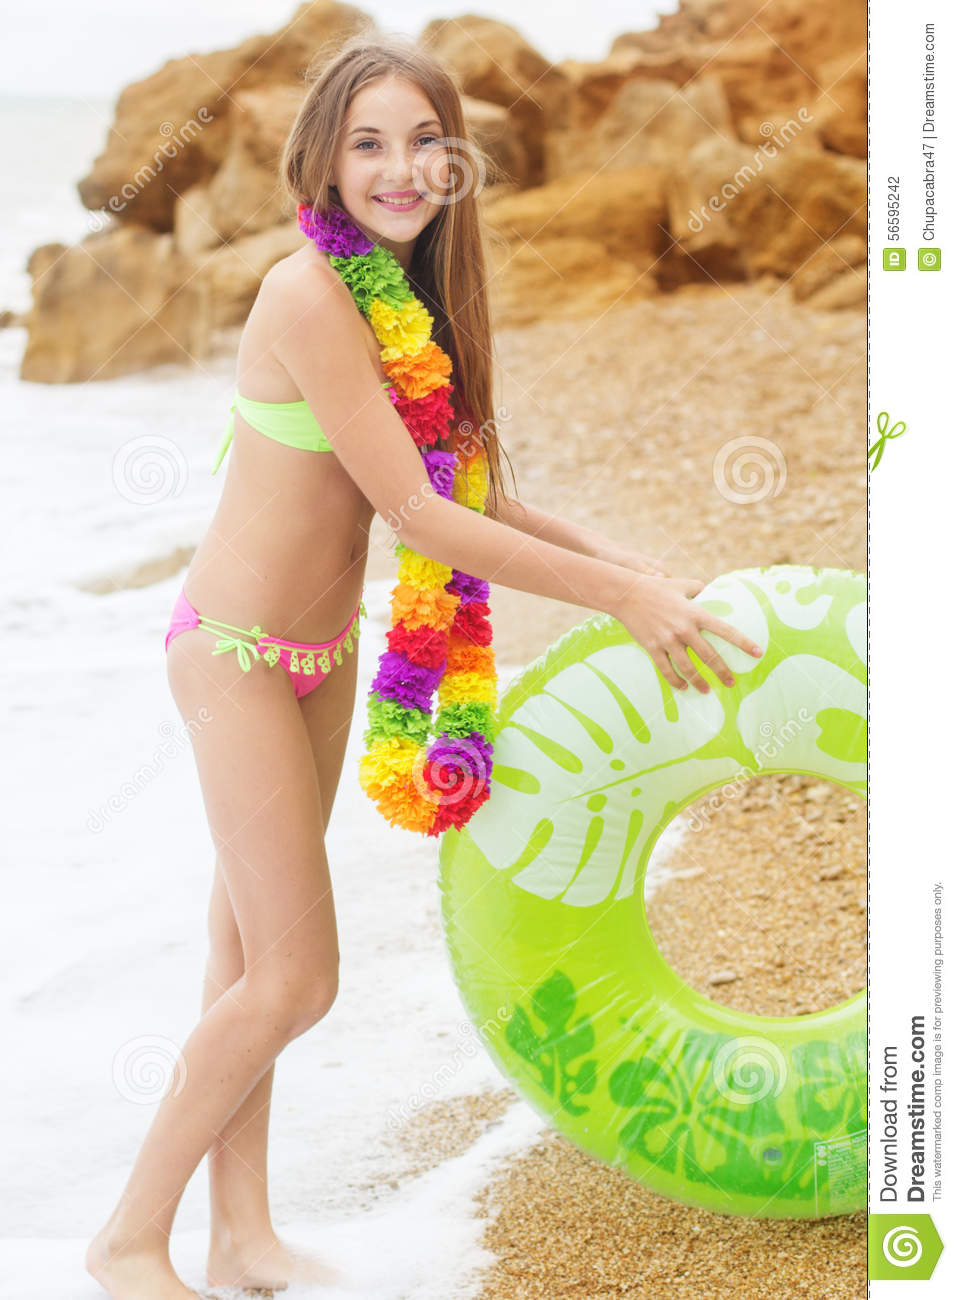 Girl Is Wearing Swimsuit With Green Rubber Ring Stock